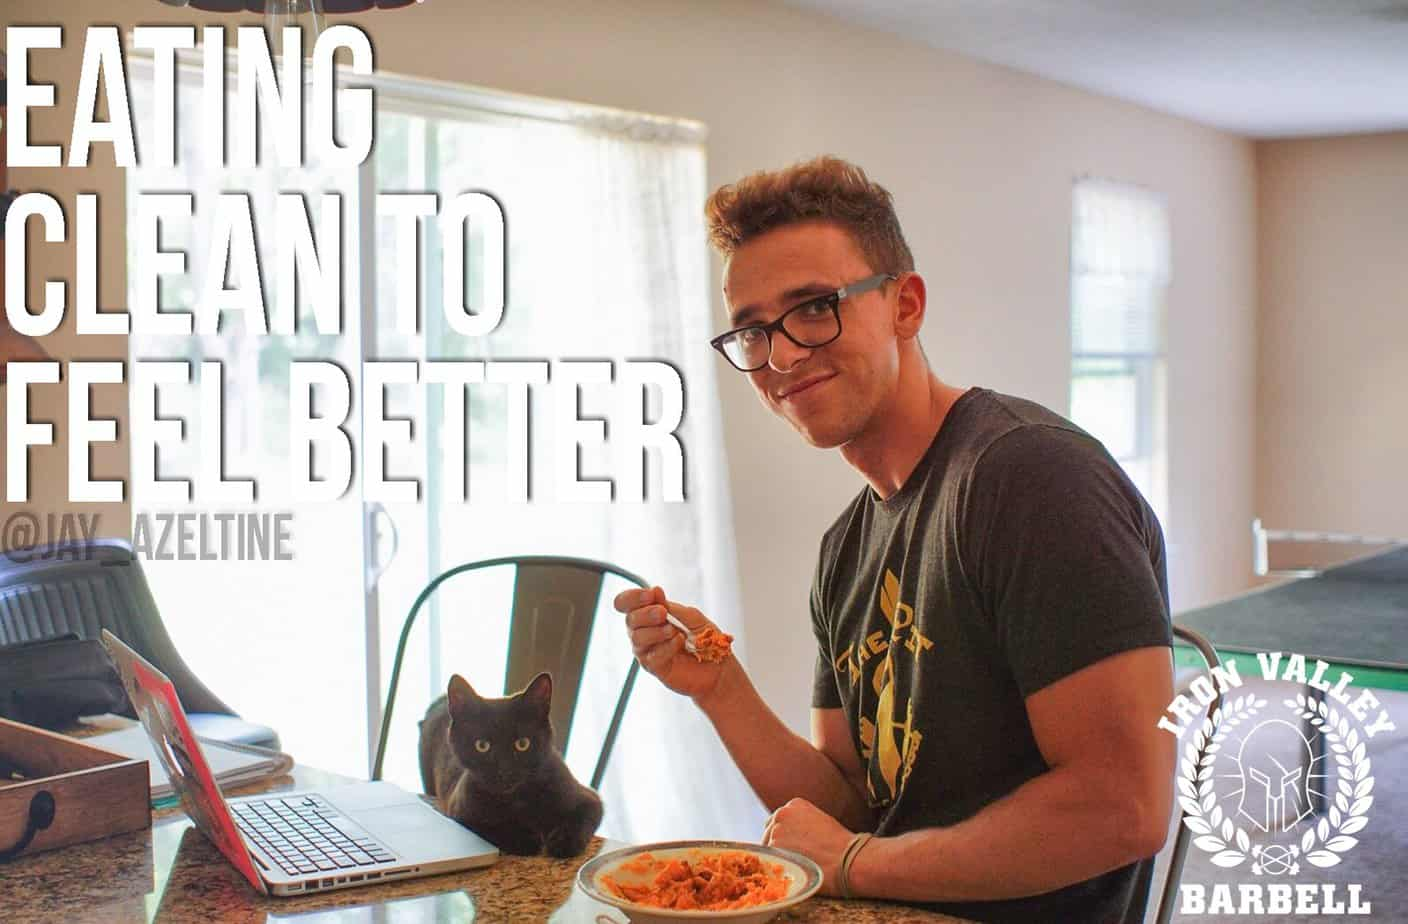 Eating Clean To Feel Better – Jay Azeltine